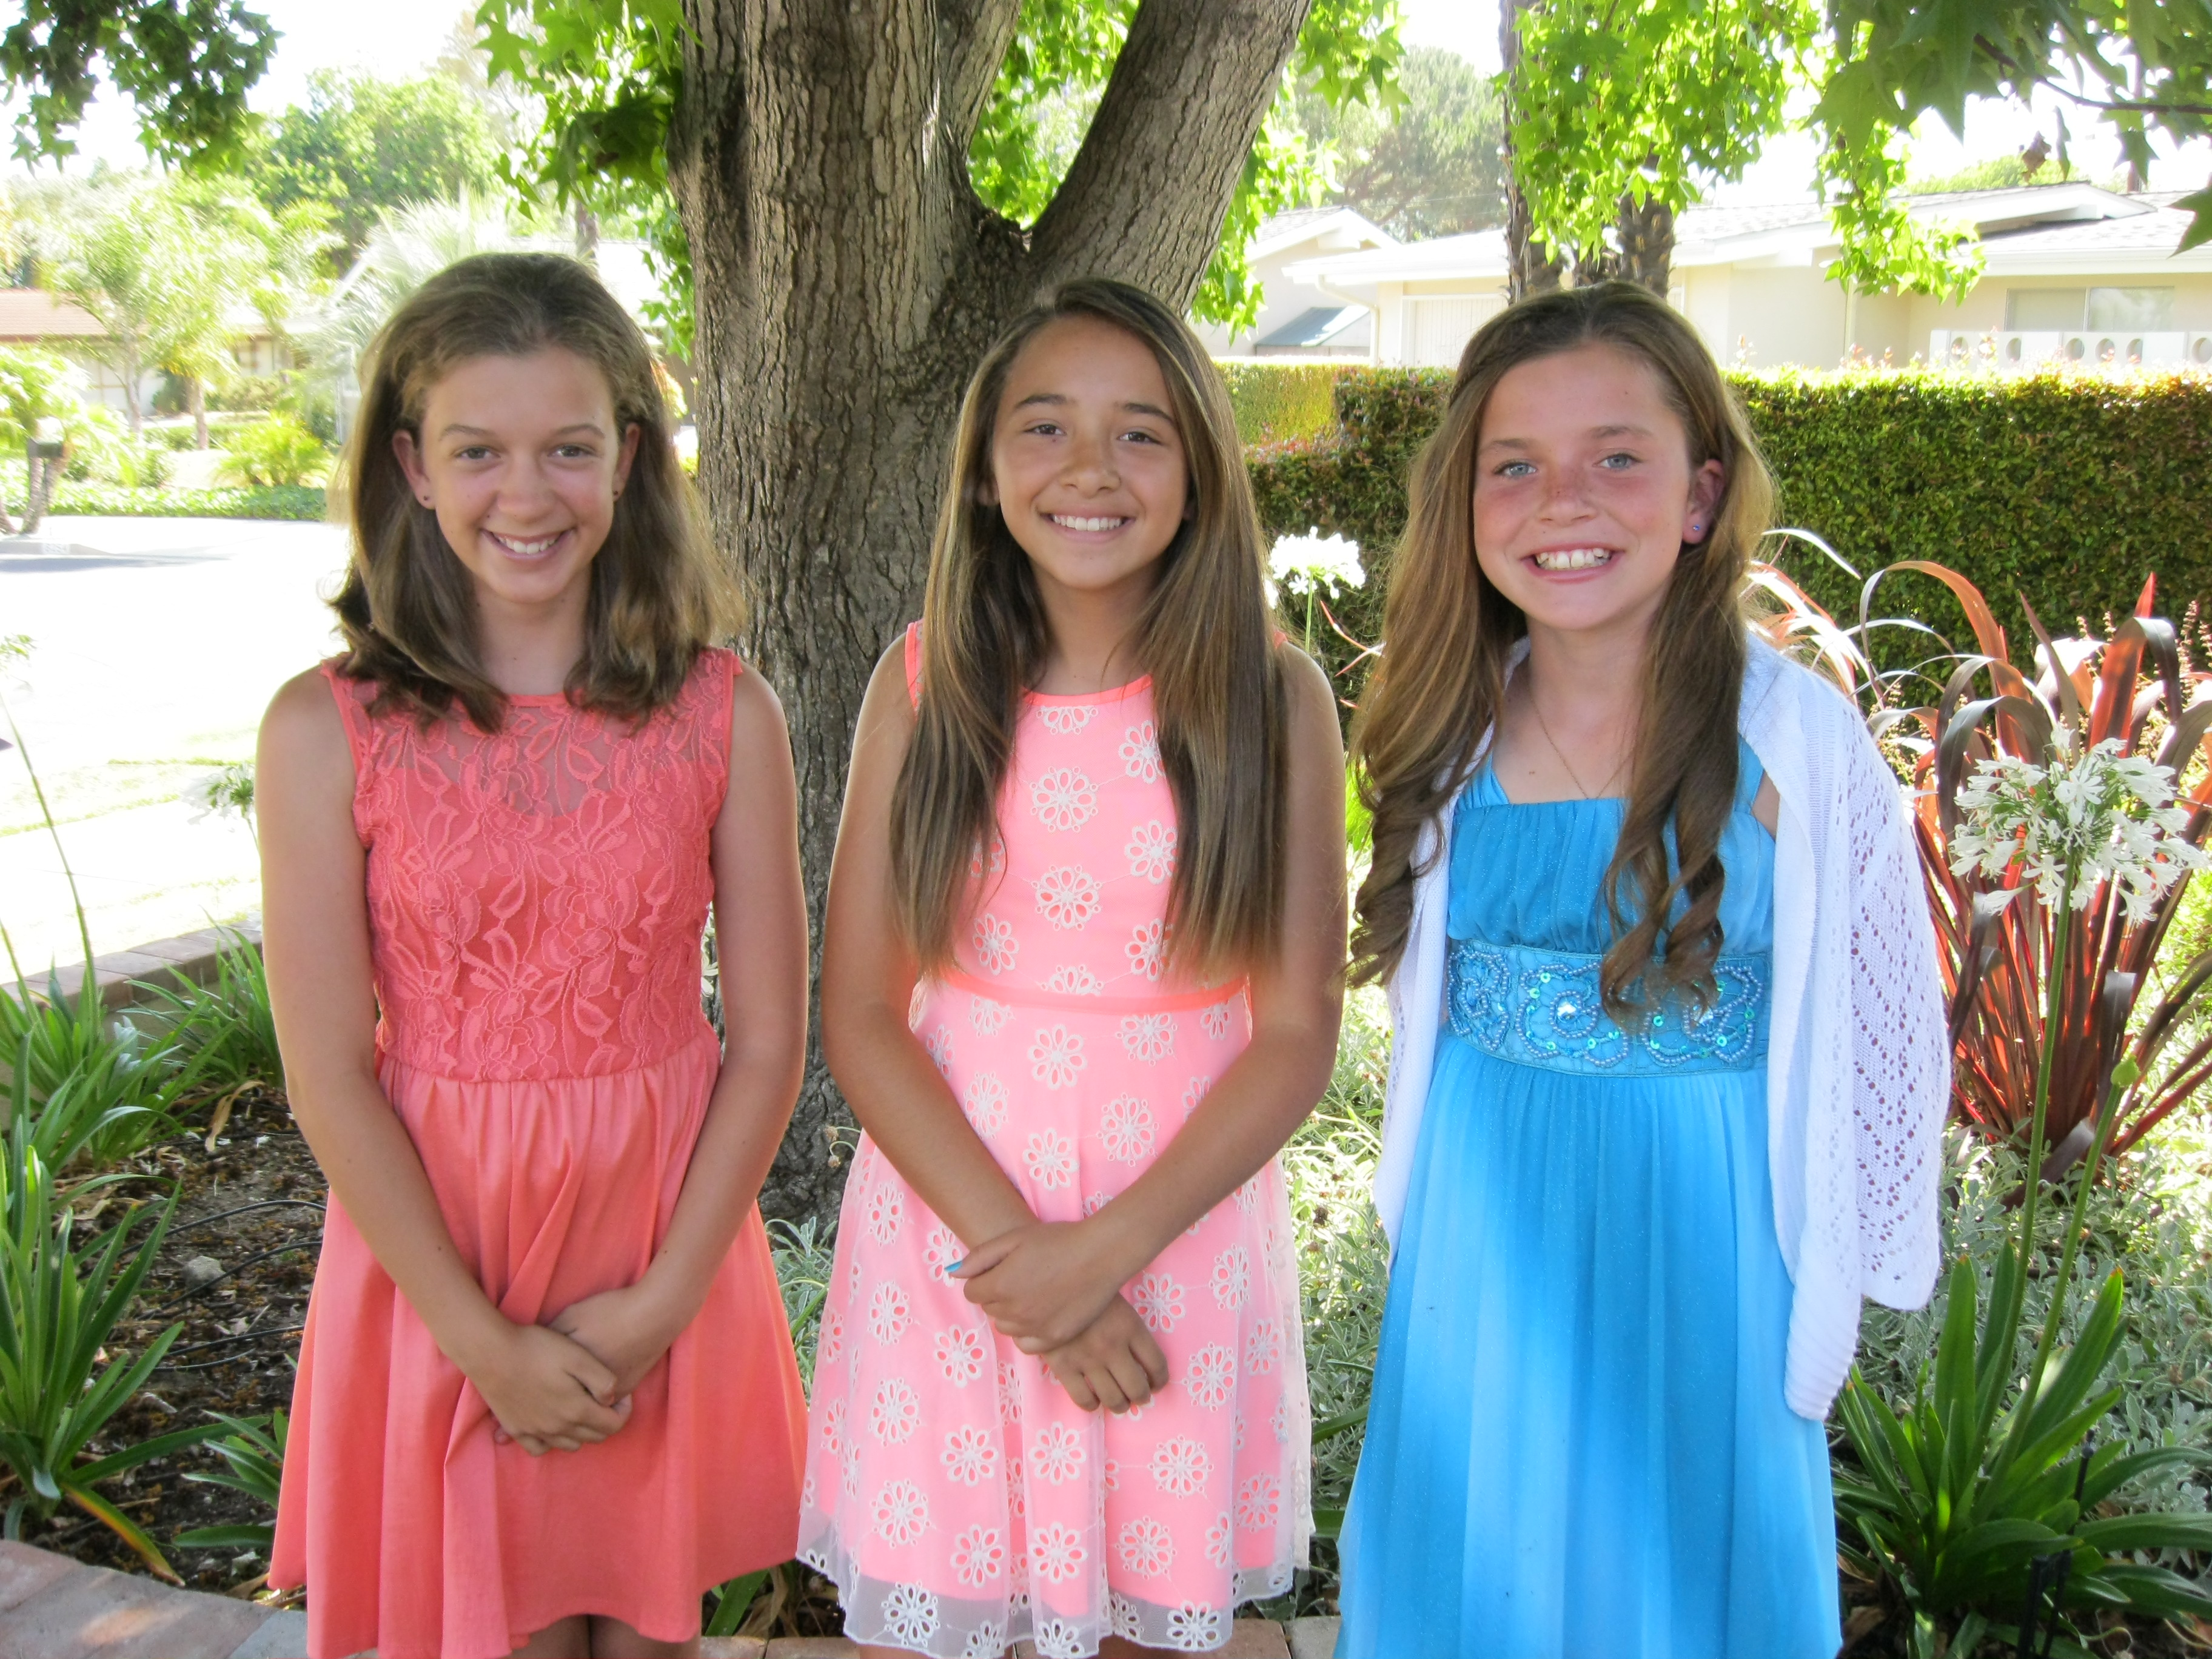 6th Grade Girls Pictures Images amp Photos  Photobucket